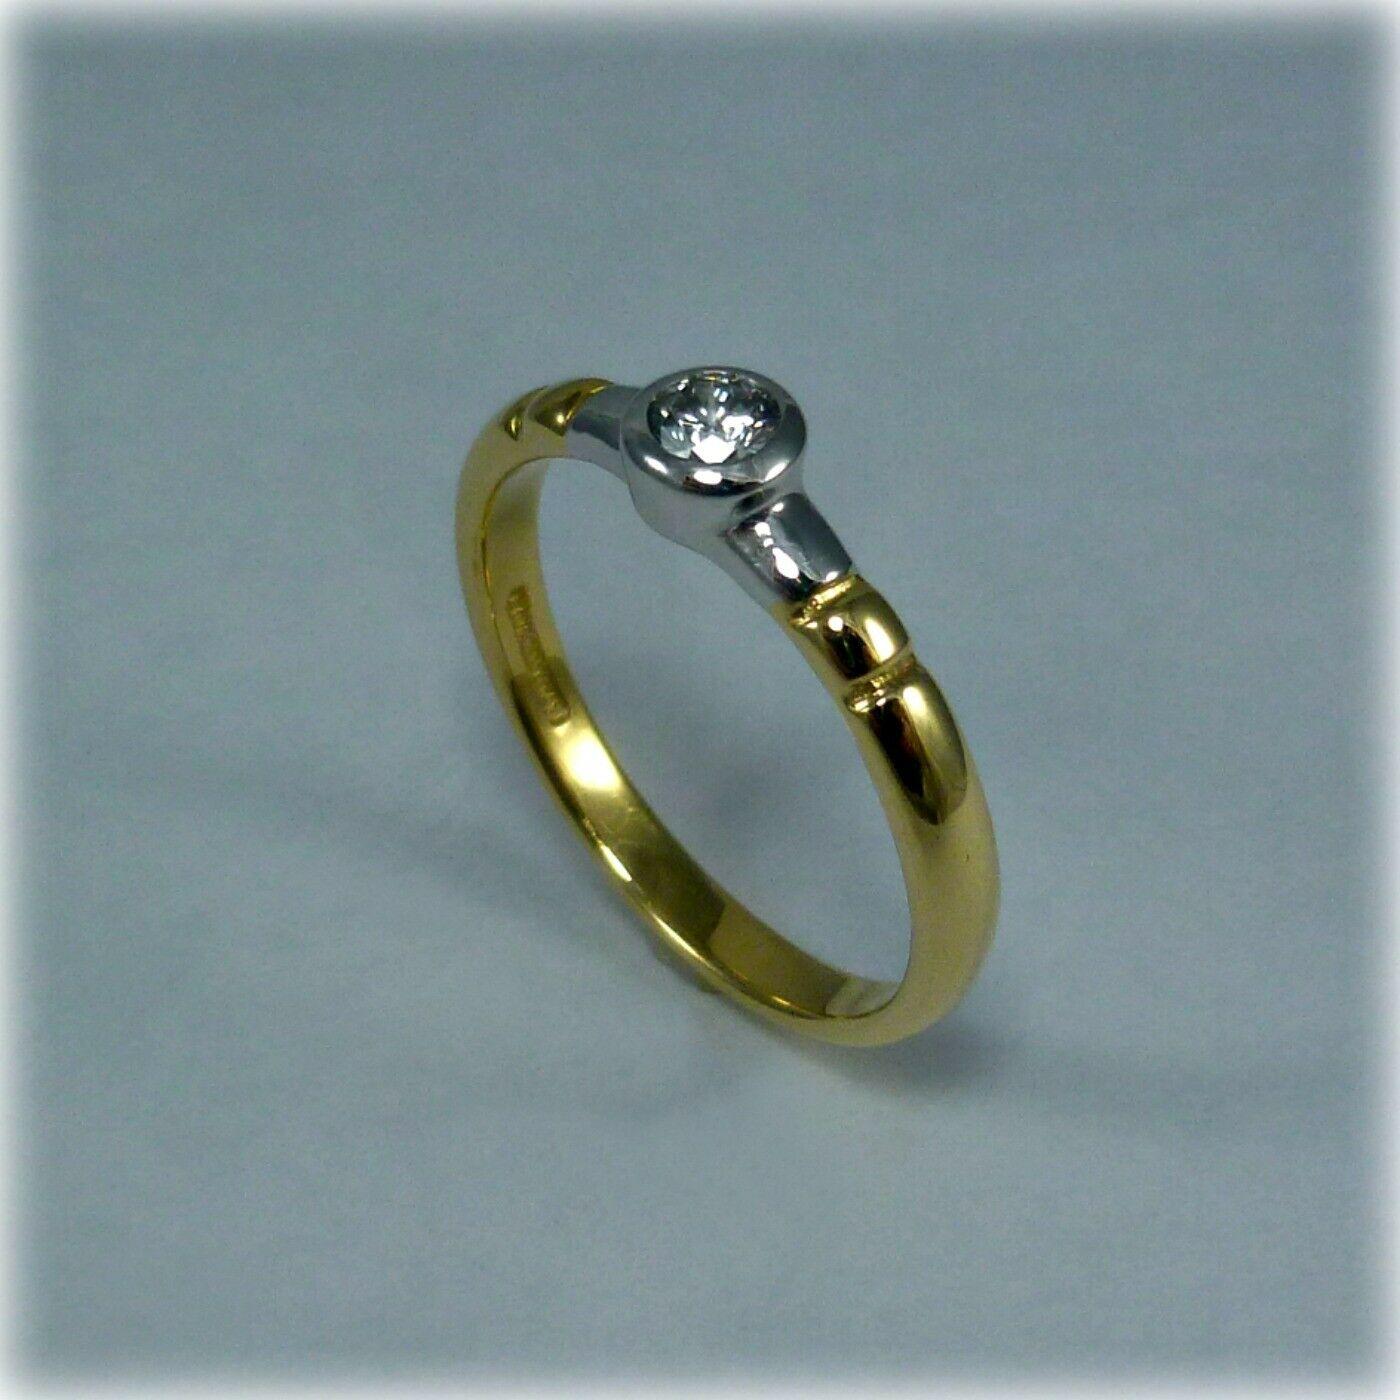 18ct gold Single Stone Diamond Ring